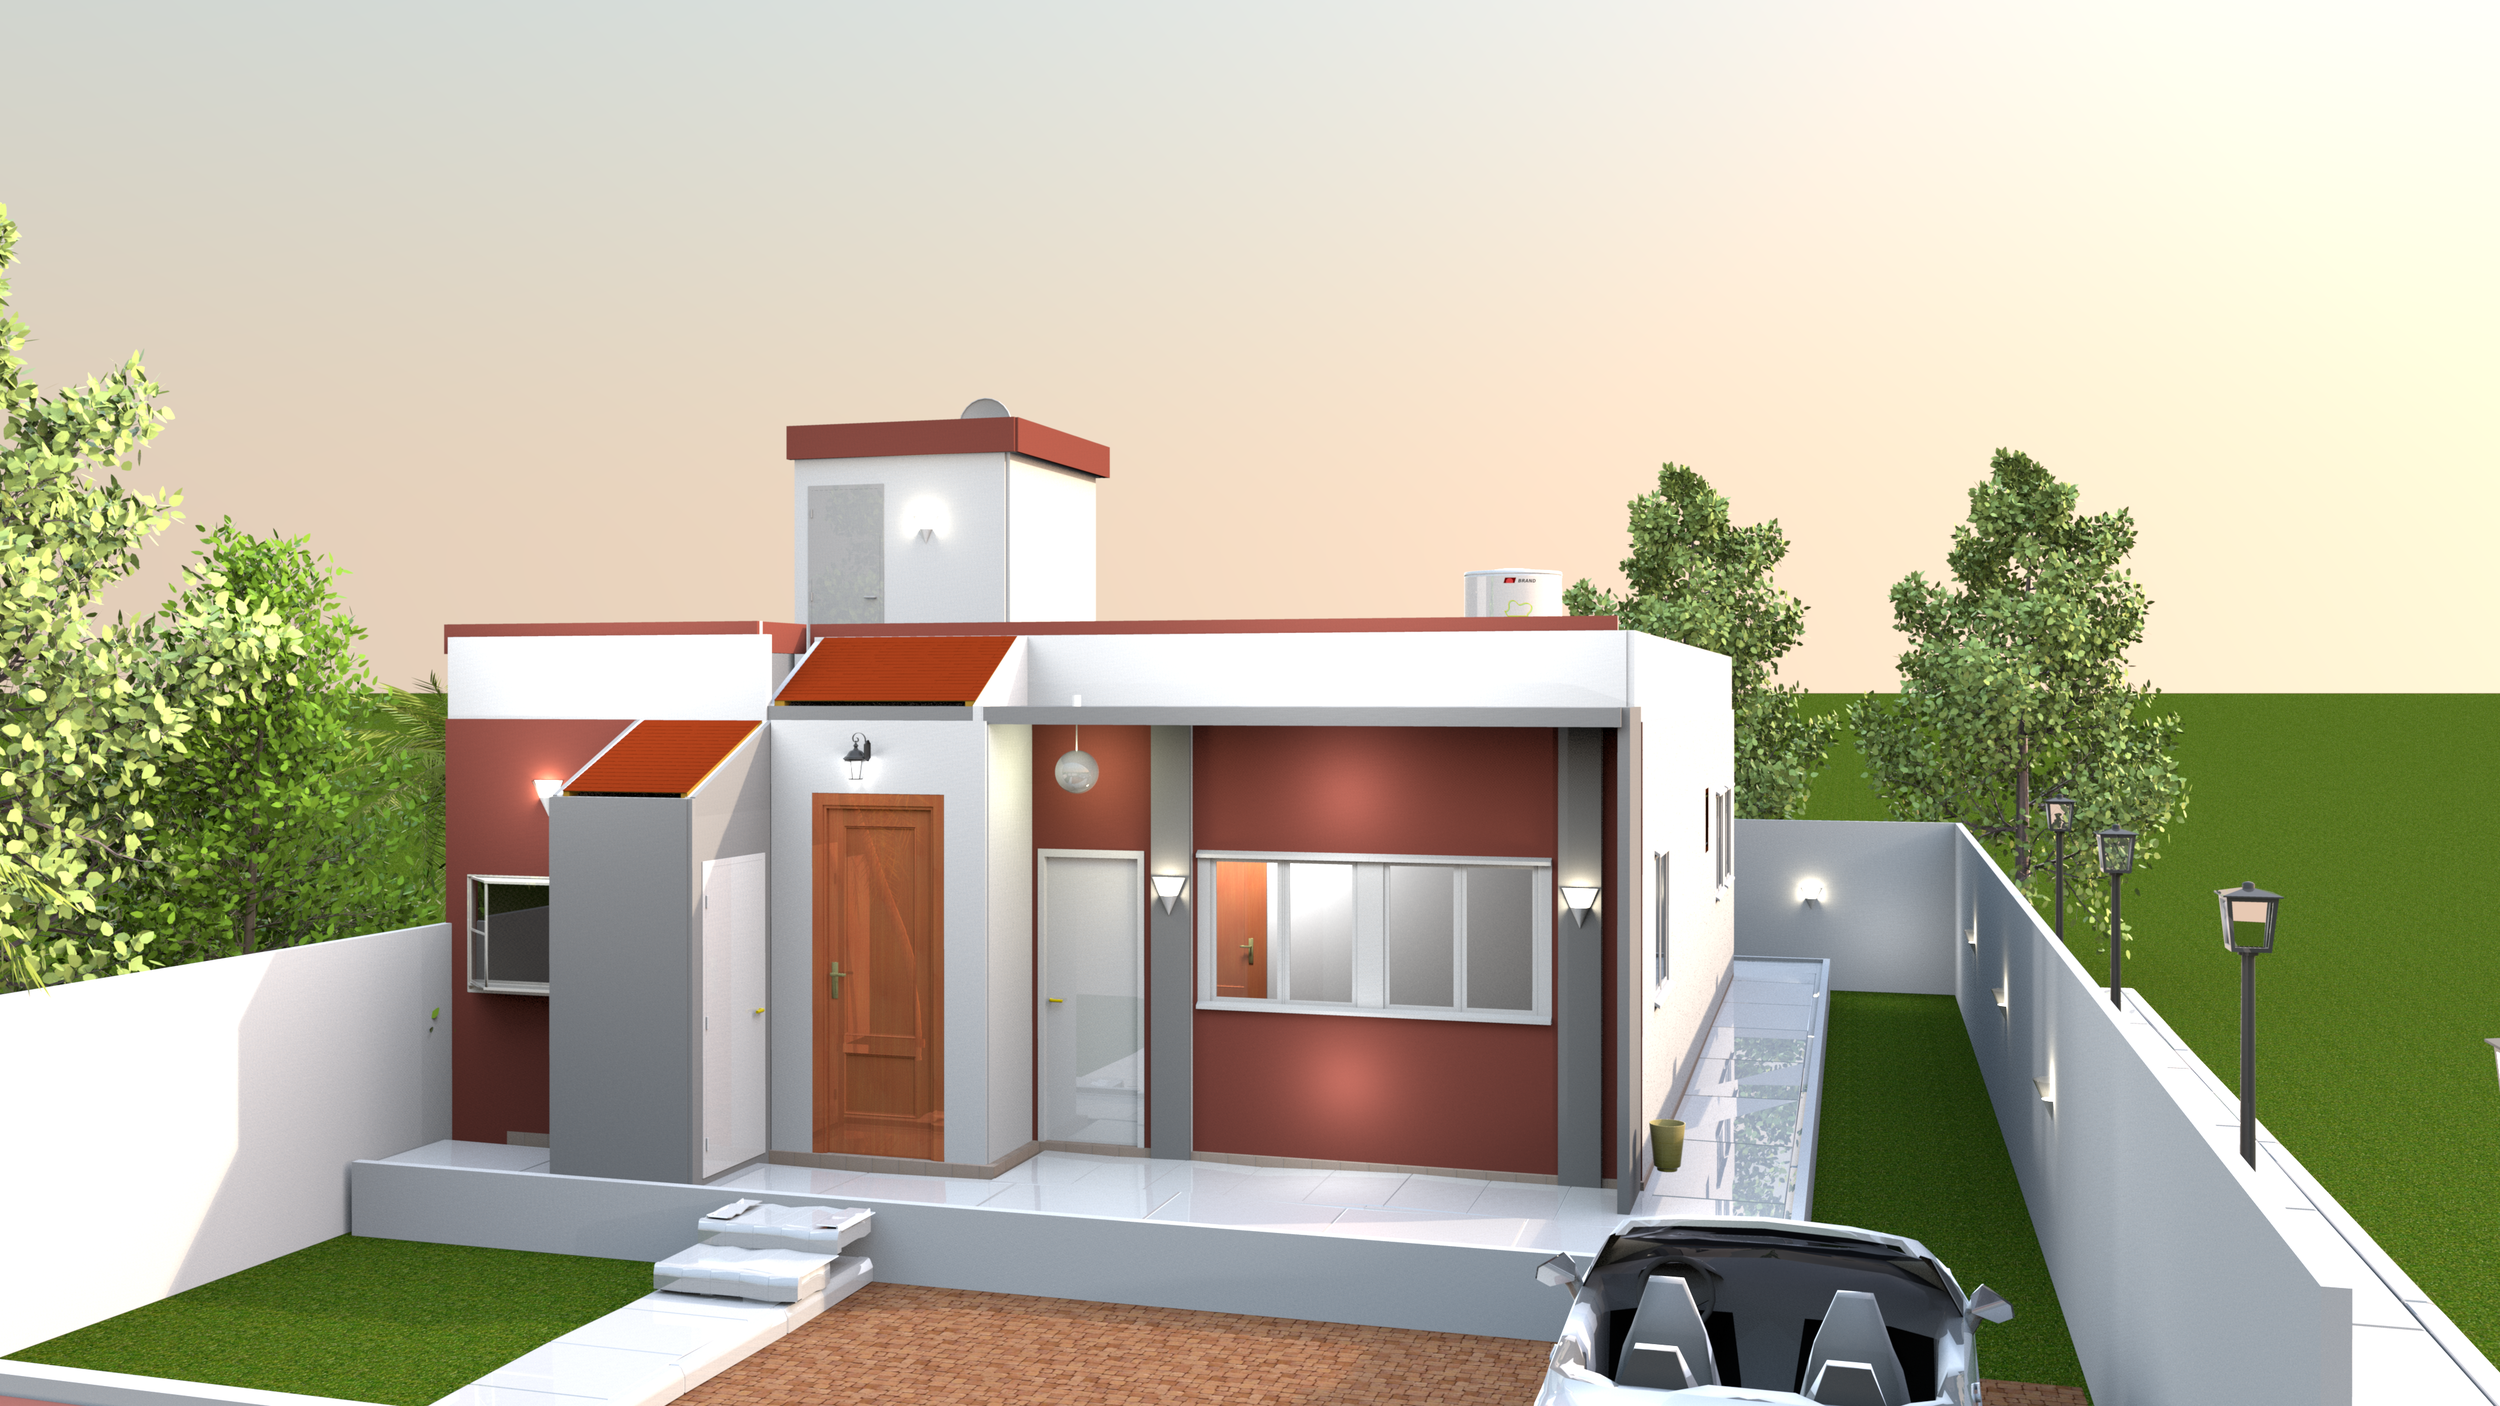 100sqm_exterior rendered.png